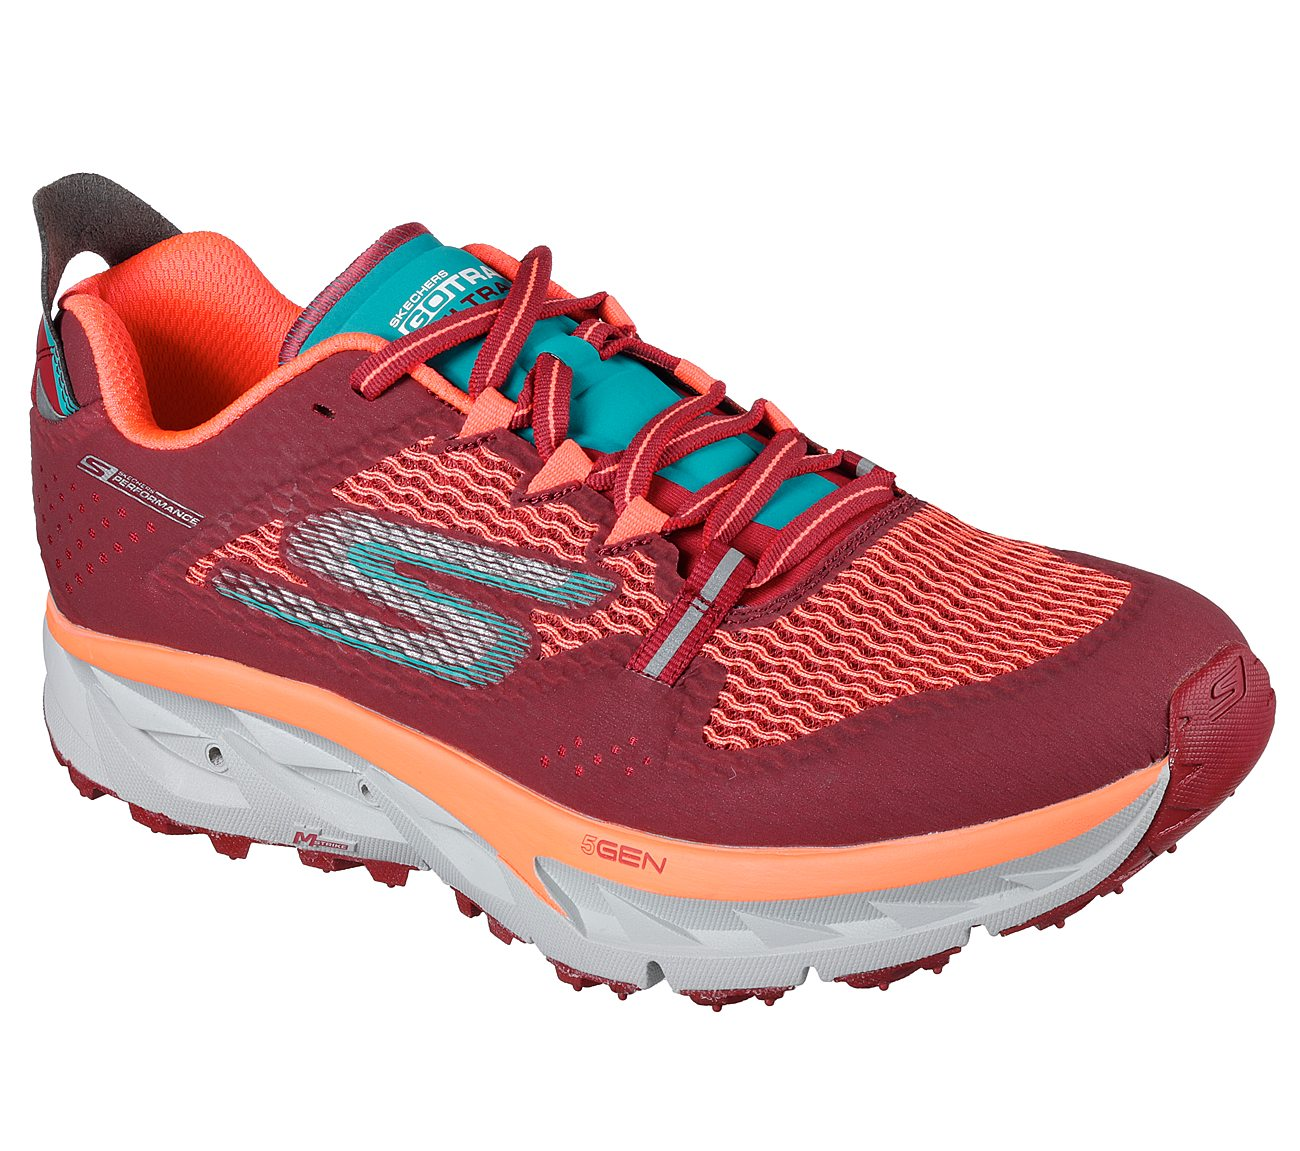 SKECHERS GO TRAIL ULTRA 4 – The BCode